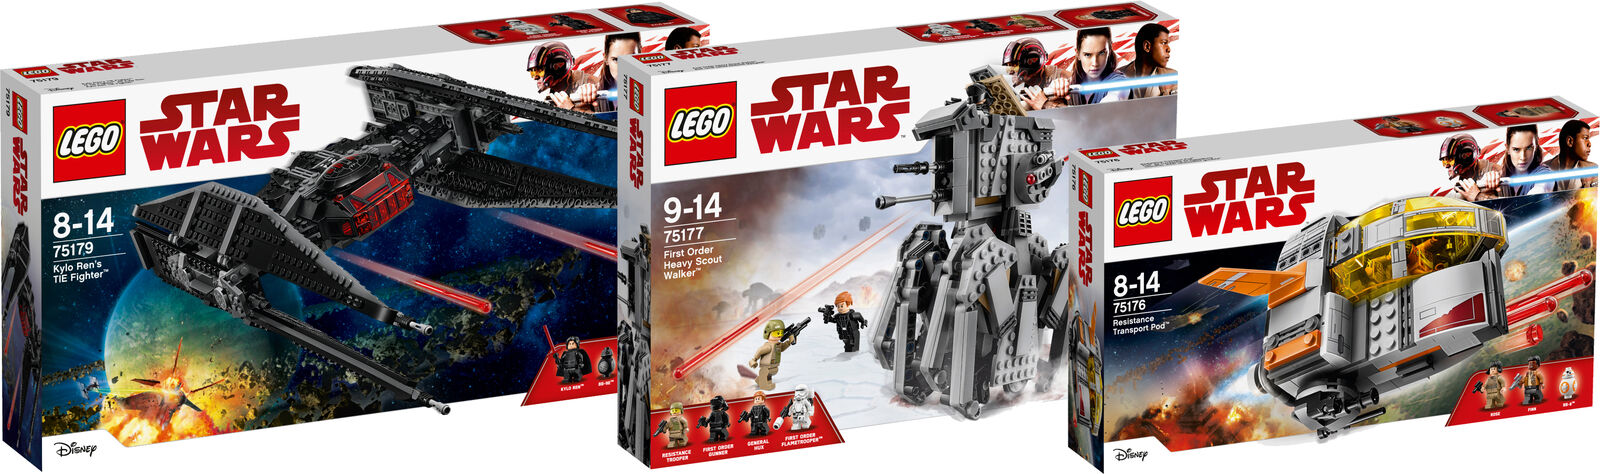 LEGO ® Star Wars Super Set 75179 75177 75176